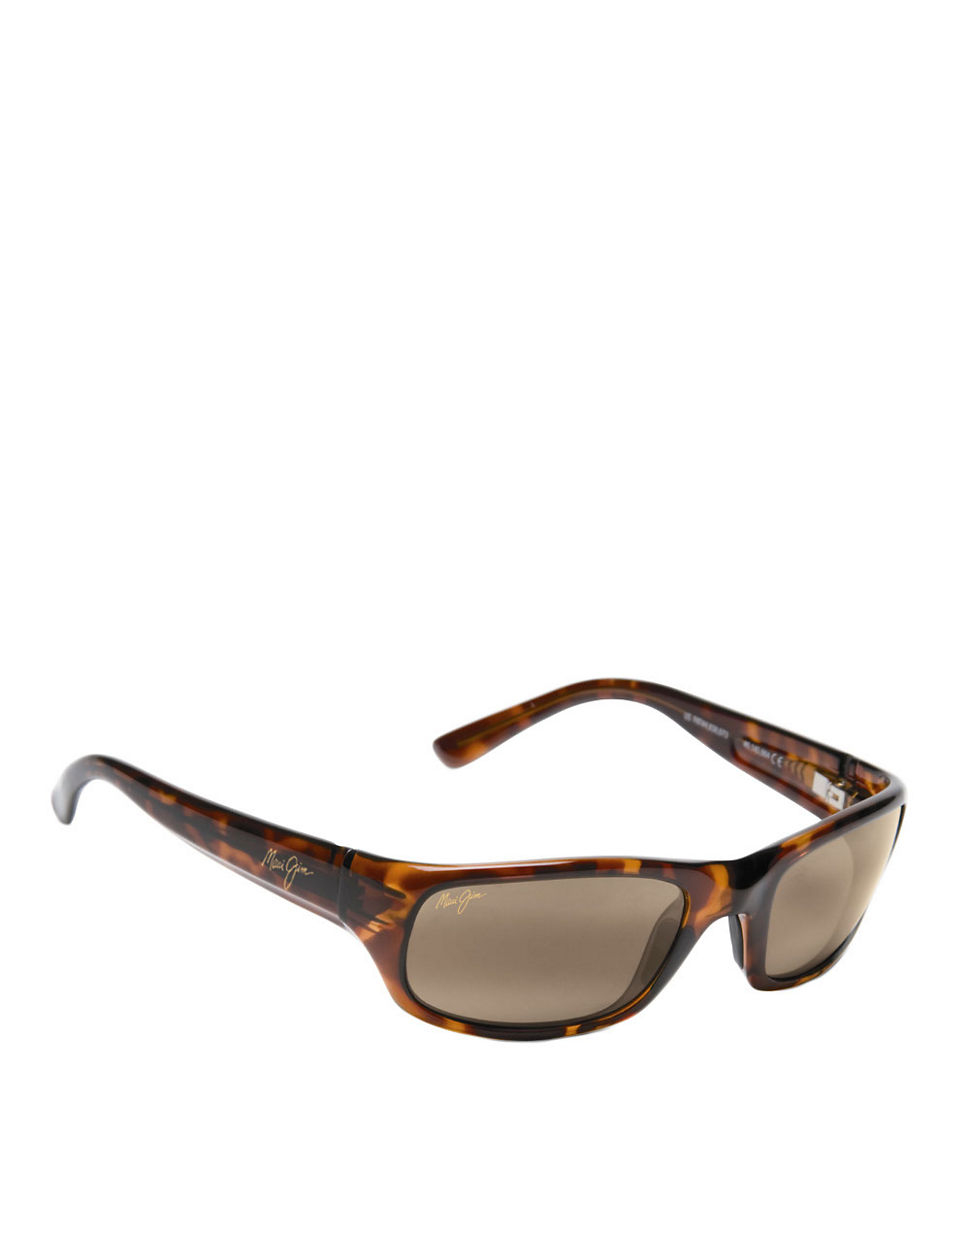 21425d9907 Discount Maui Jim Stingray Sunglasses